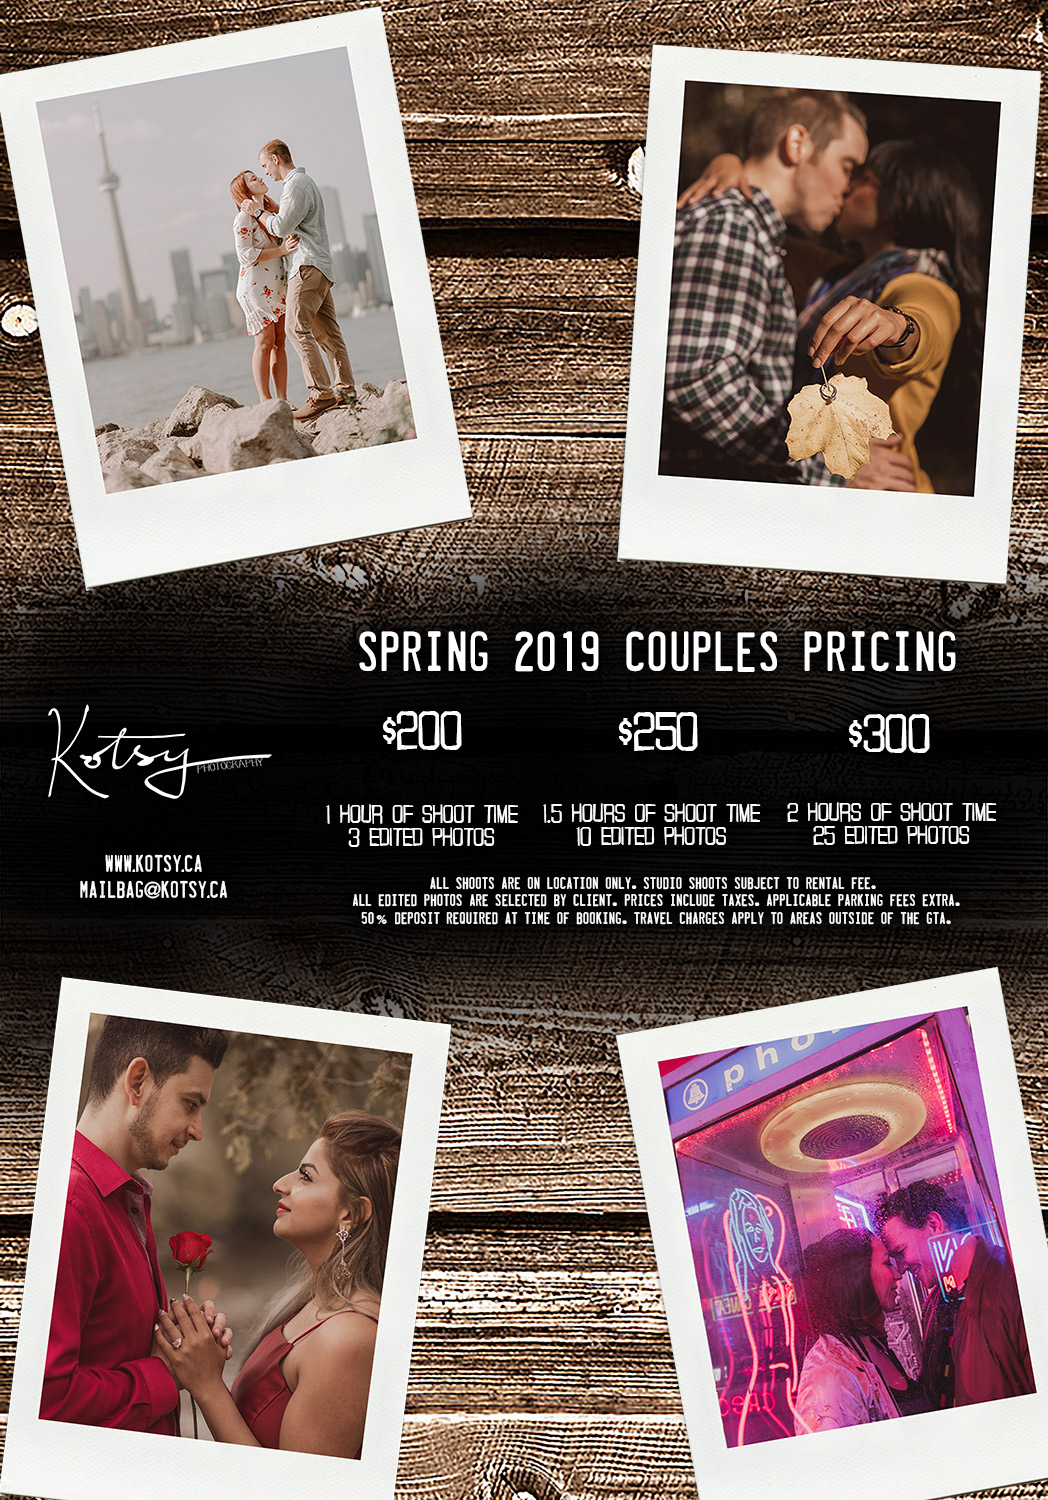 Spring 2019 Couples Pricing    $200 - 1 Hour of Shoot Time/3 Edited Photos $250 - 1.5 Hours of Shoot Time/10 Edited Photos $300 - 2 Hours of Shoot Time/25 Edited Photos   All shoots are on location only. Studio shoots subject to rental fee. All edited photos are selected by client. Prices include taxes. Applicable parking fees extra. 50% deposit required at time of booking. Travel charges apply to areas outside of the GTA.